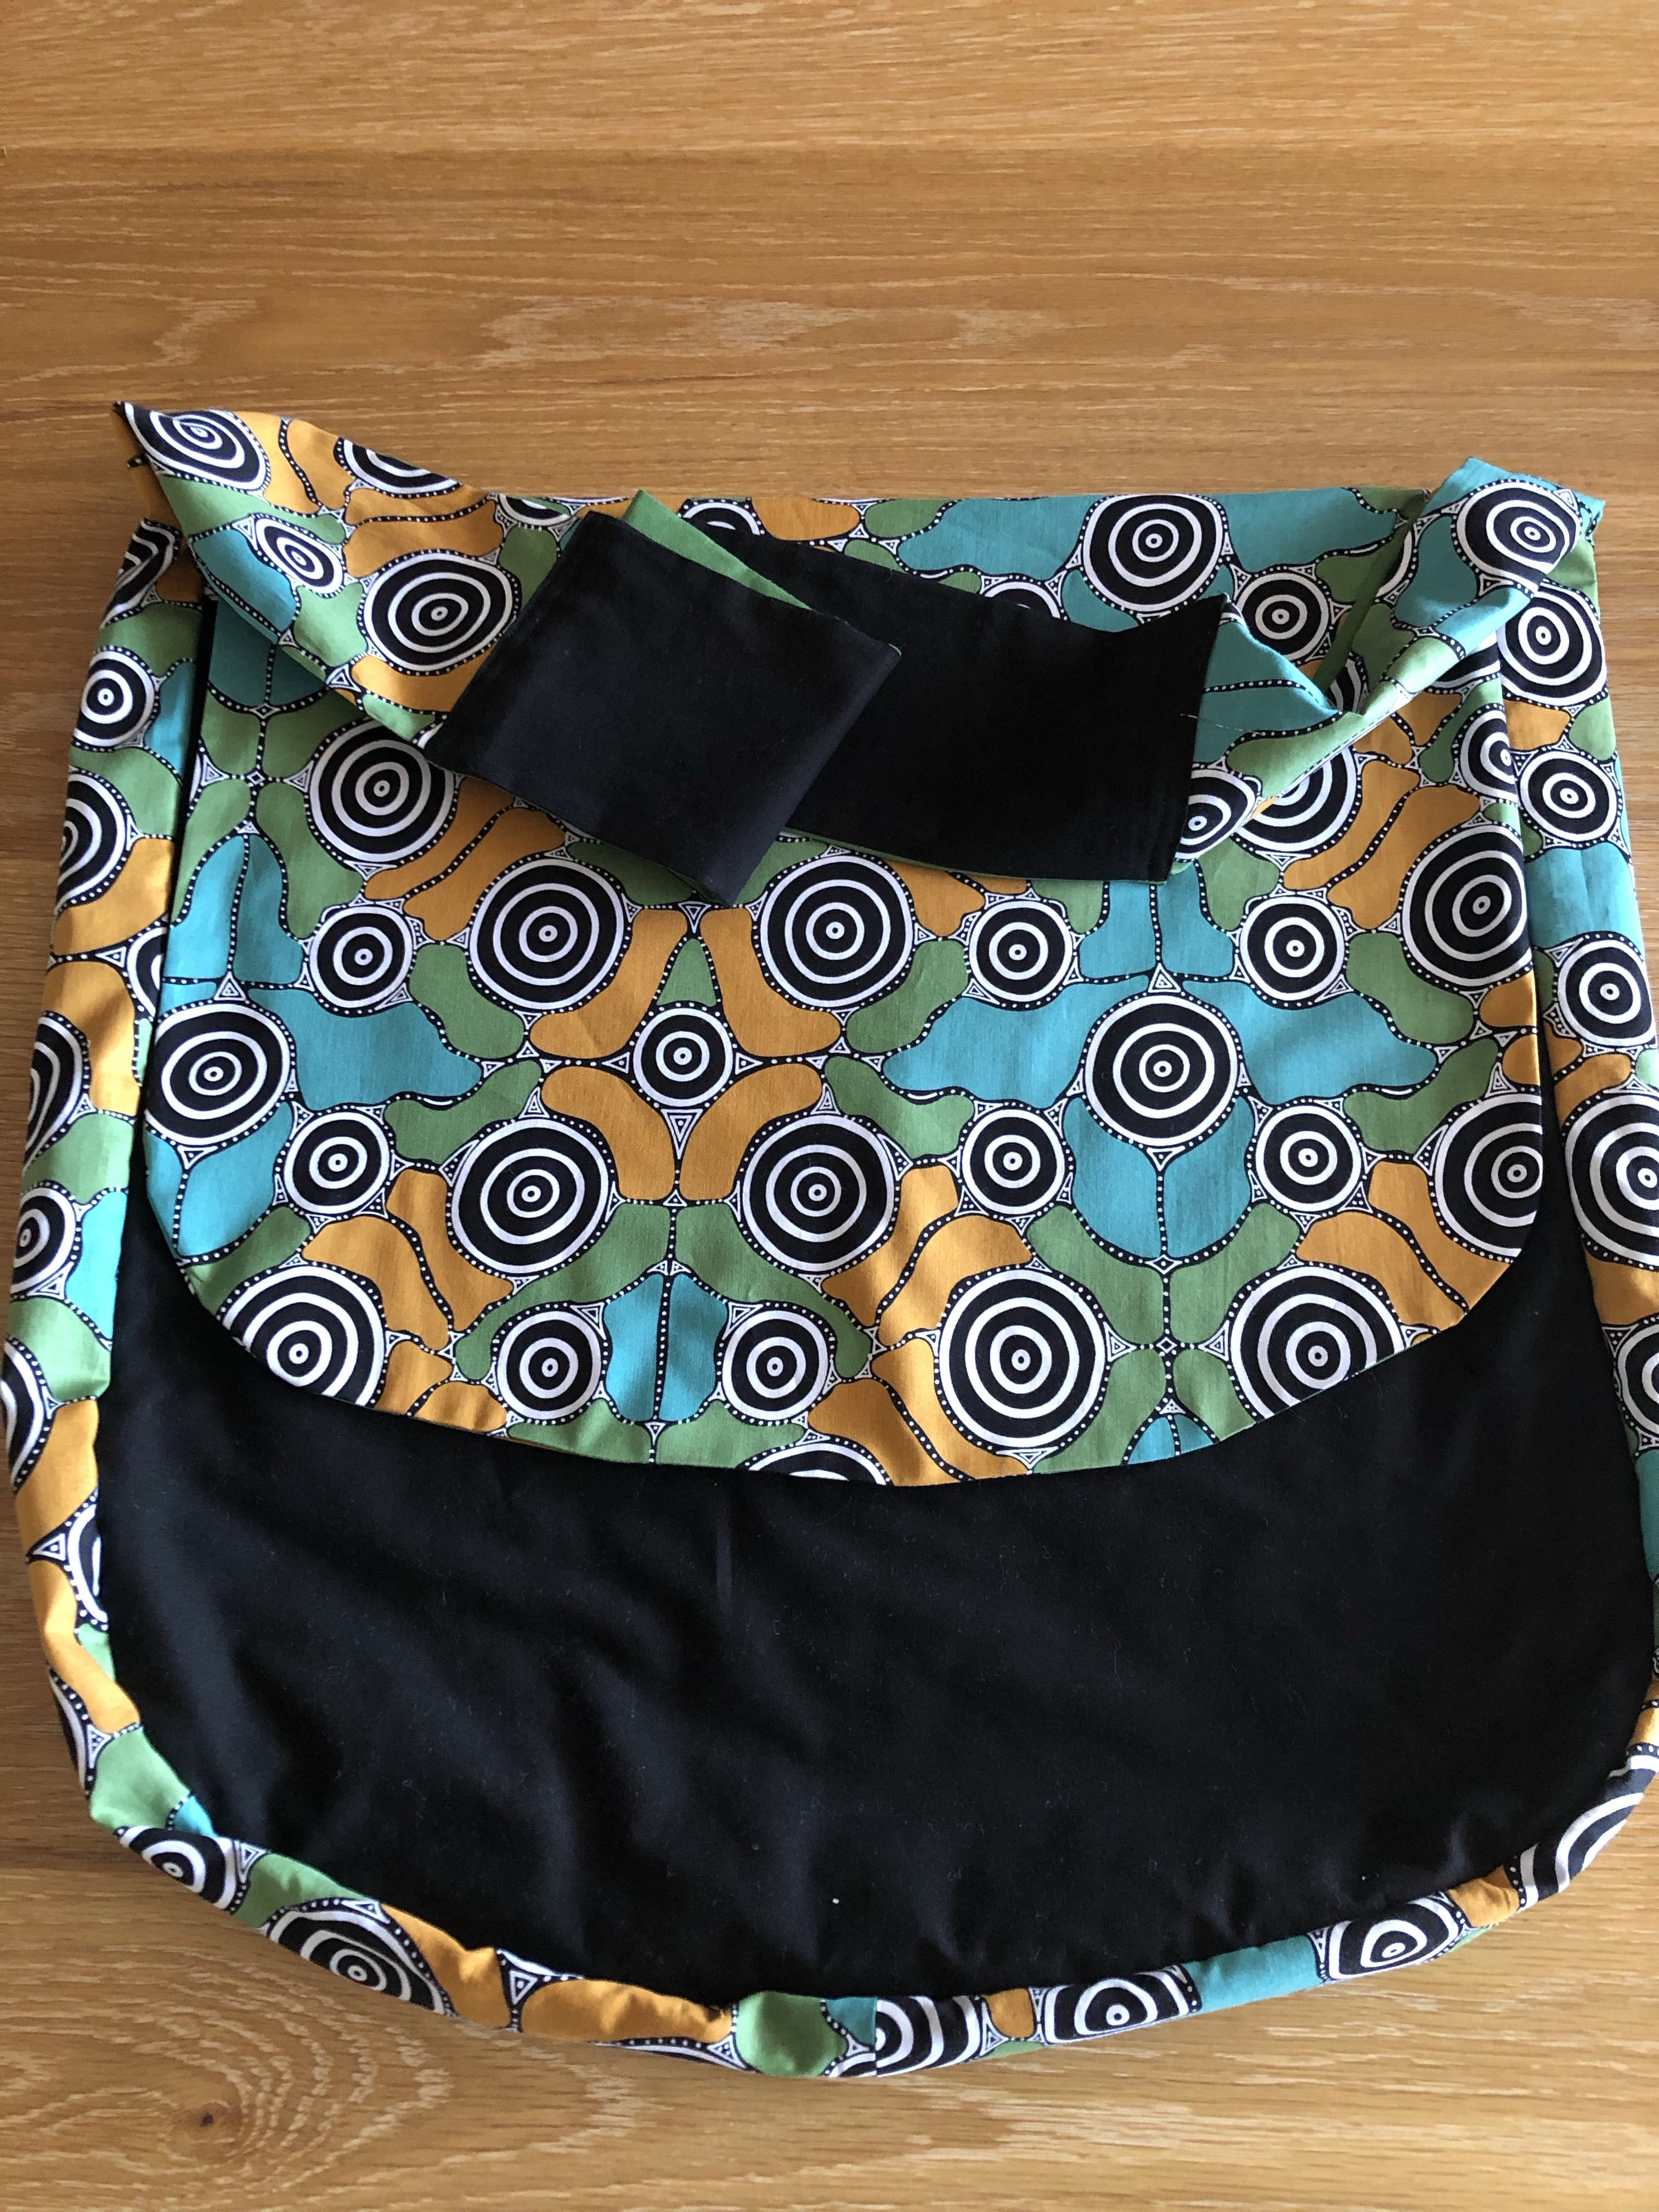 1. Grandmother's Journey Drum Bag